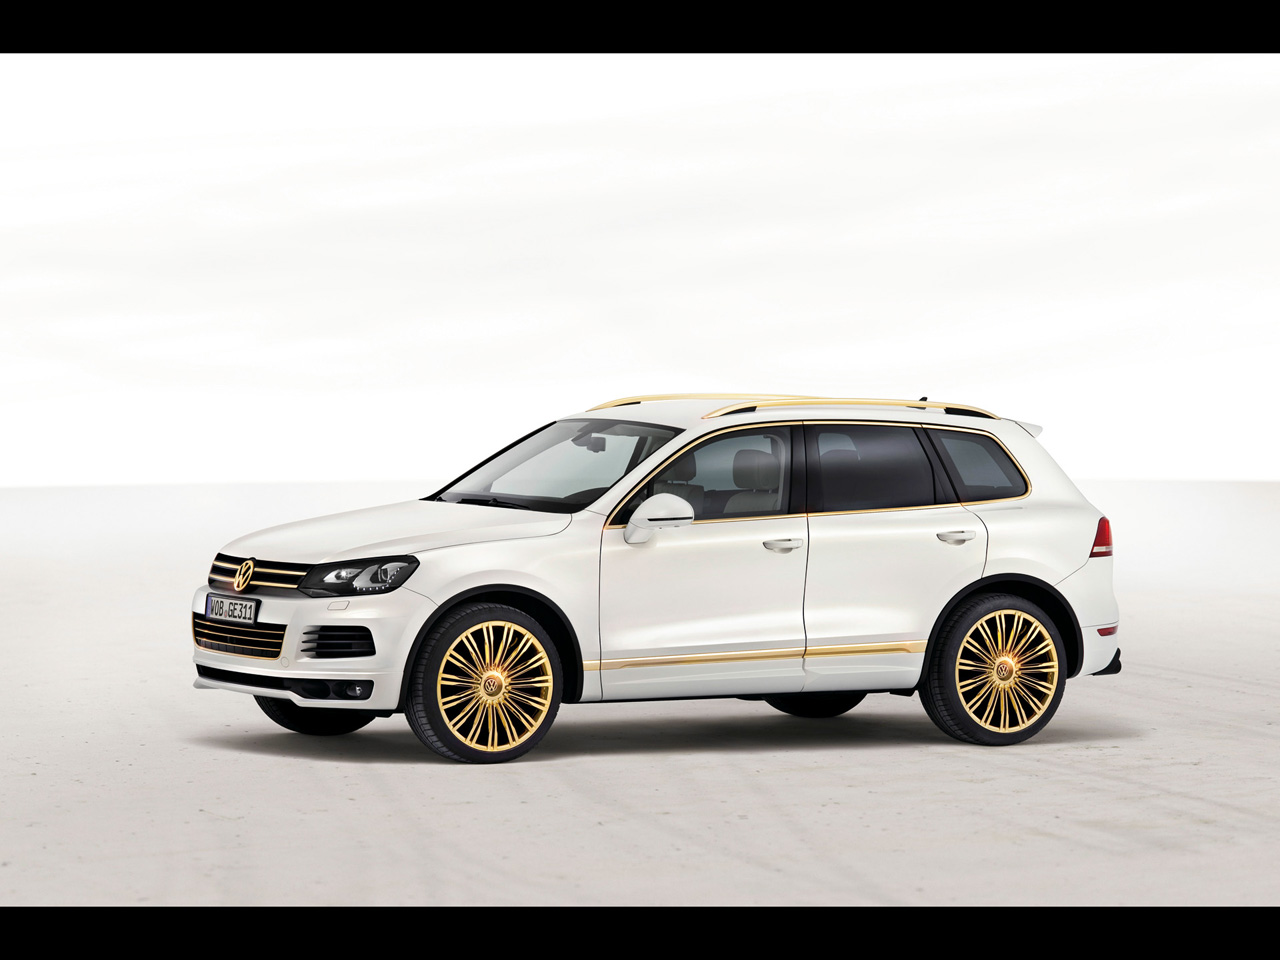 2019 Volkswagen Touareg Edition X photo - 4